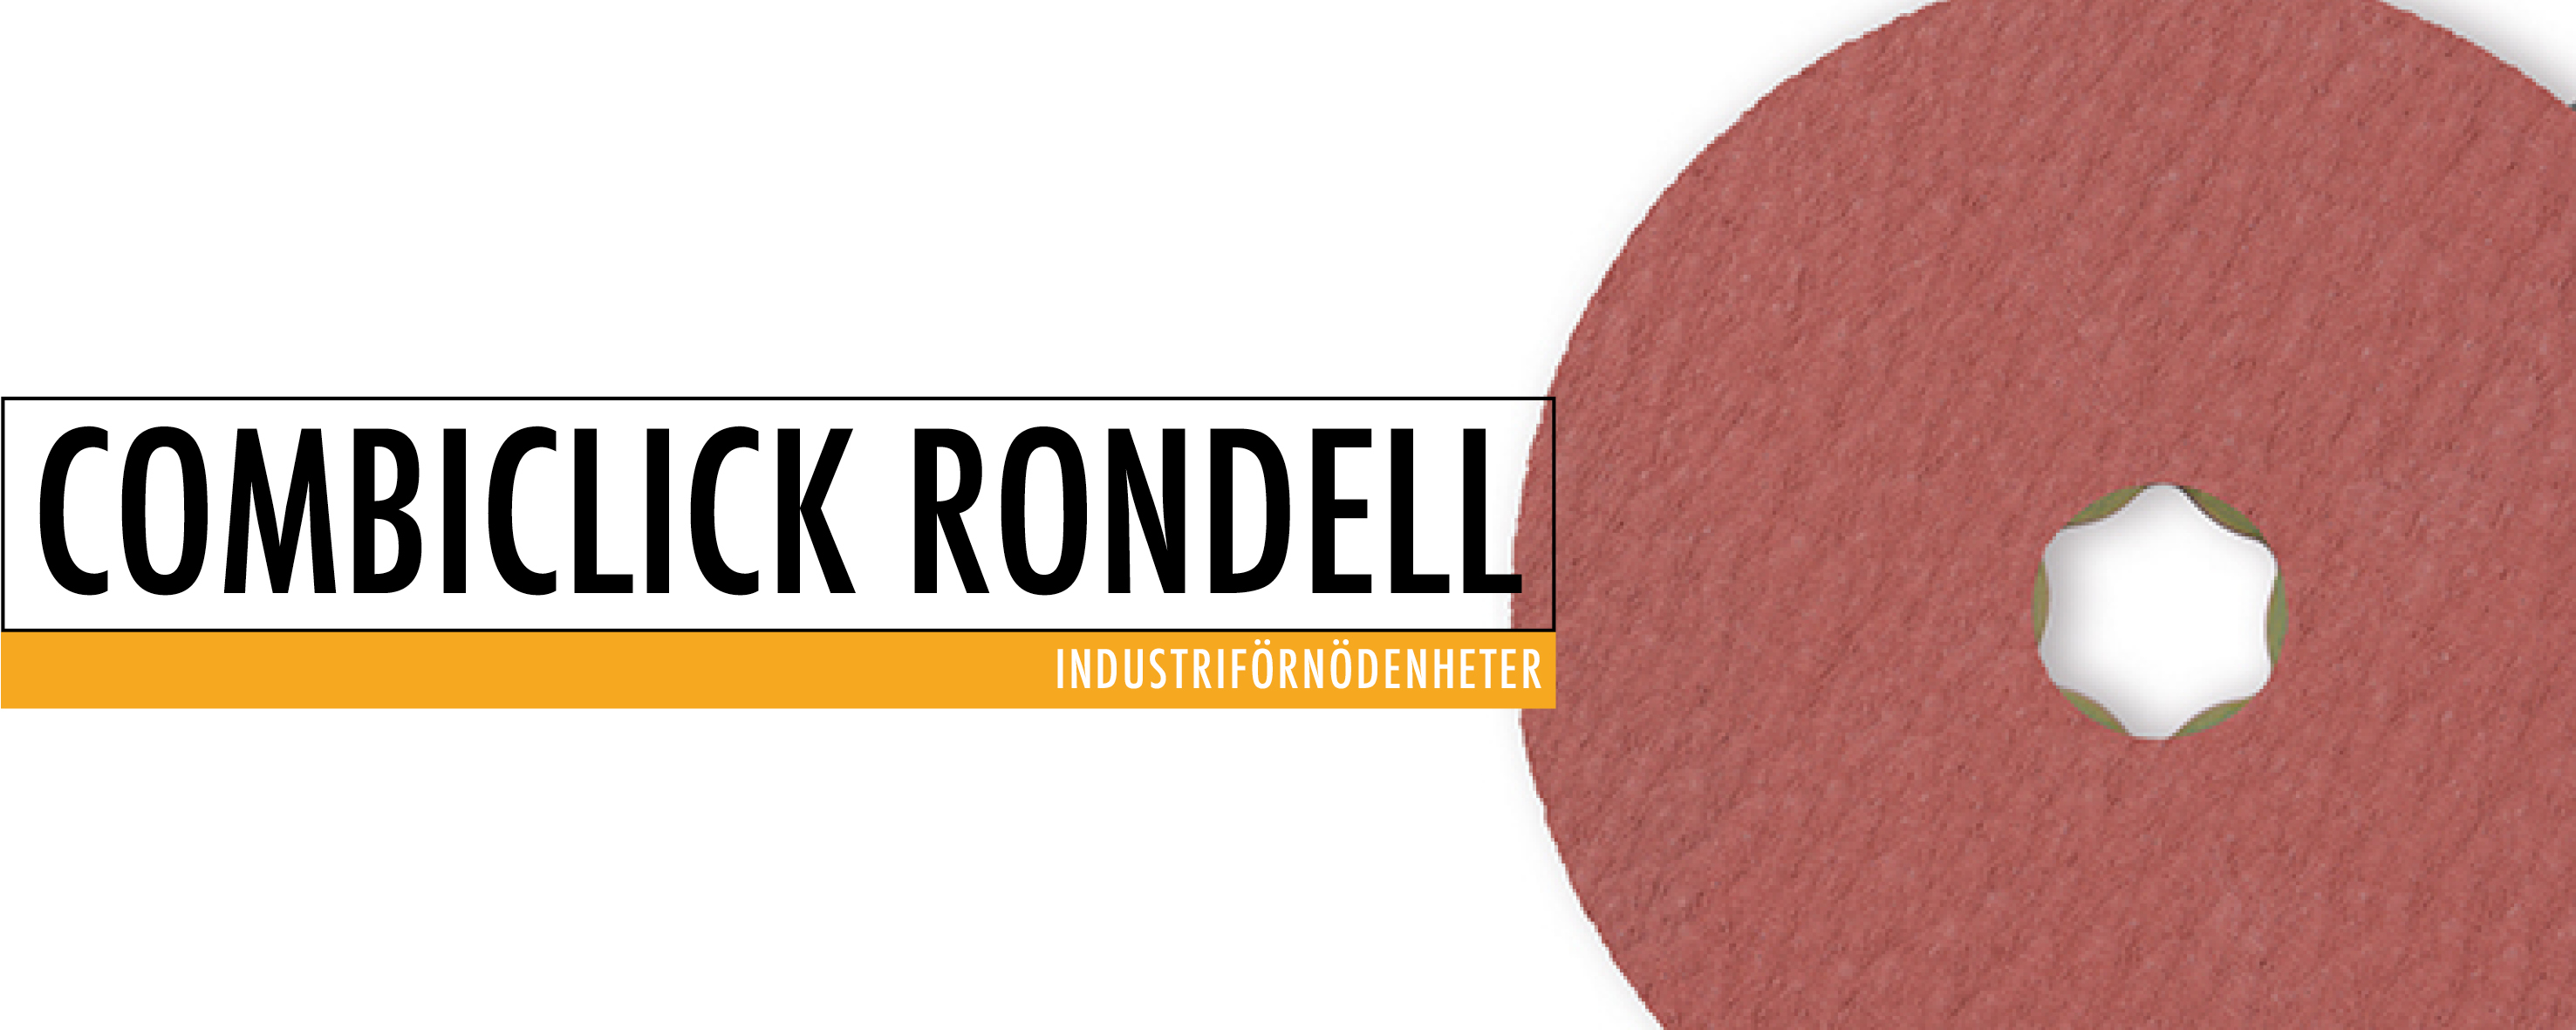 Combiclick rondell